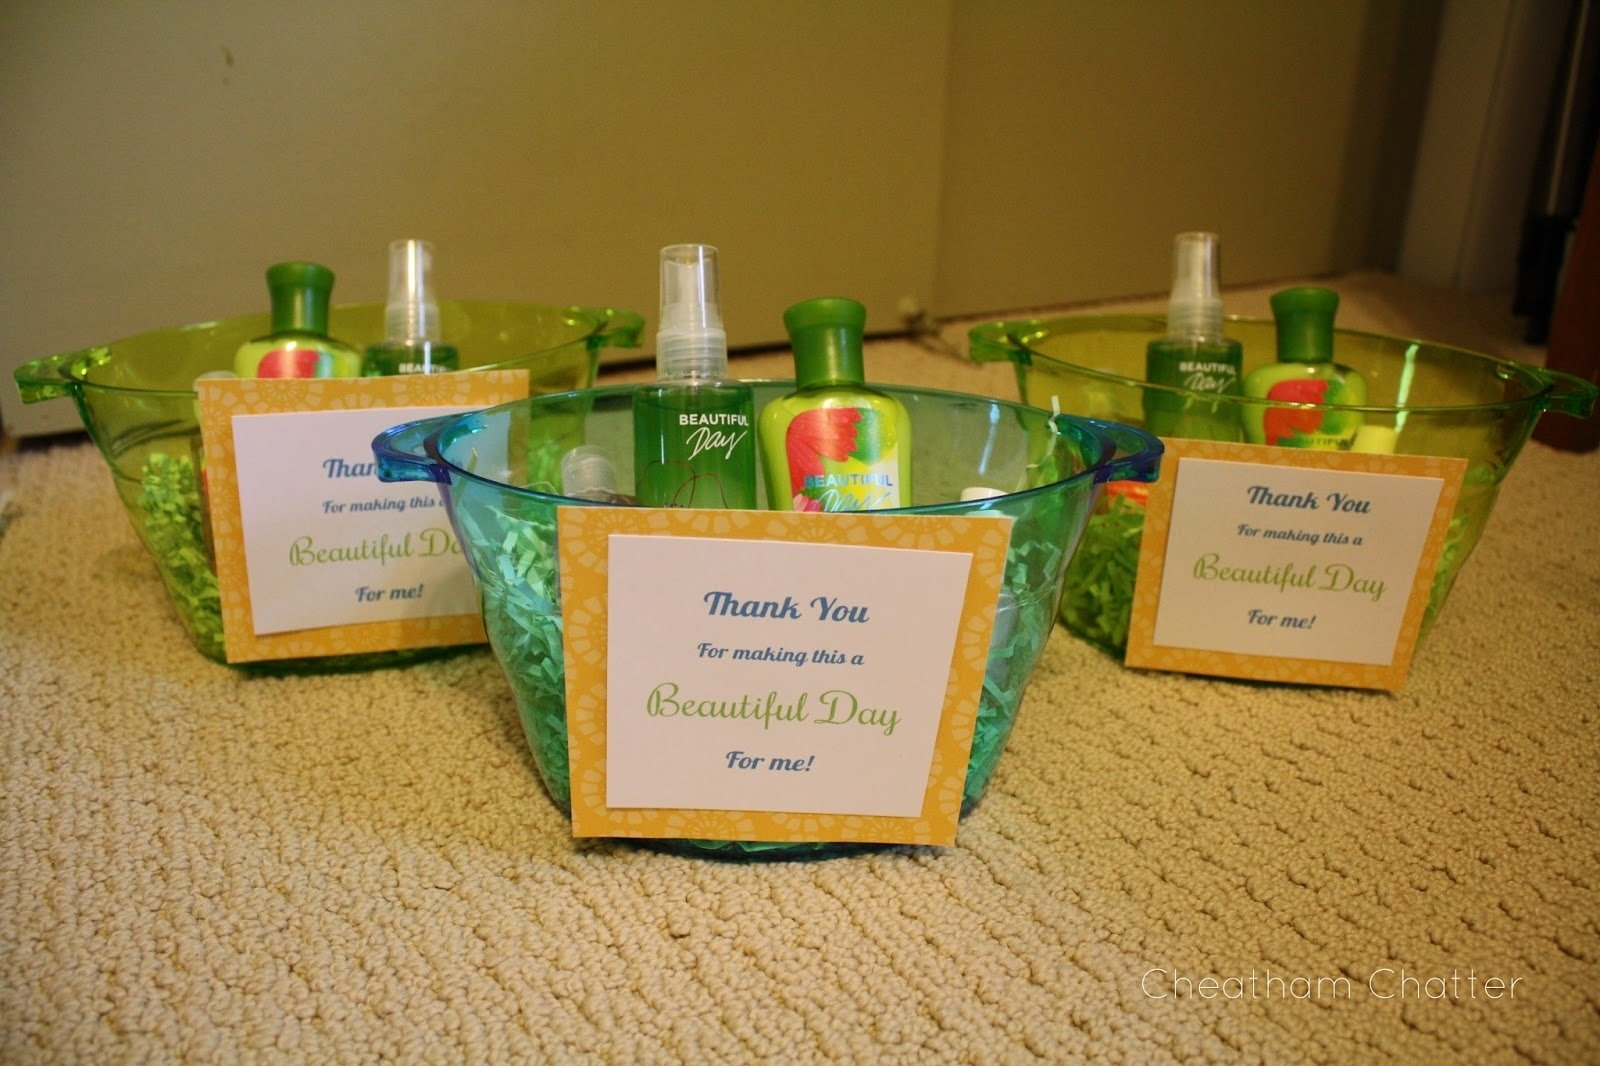 10 Most Recommended Wedding Shower Hostess Gift Ideas cheatham chatter baby shower favors hostess gifts 1